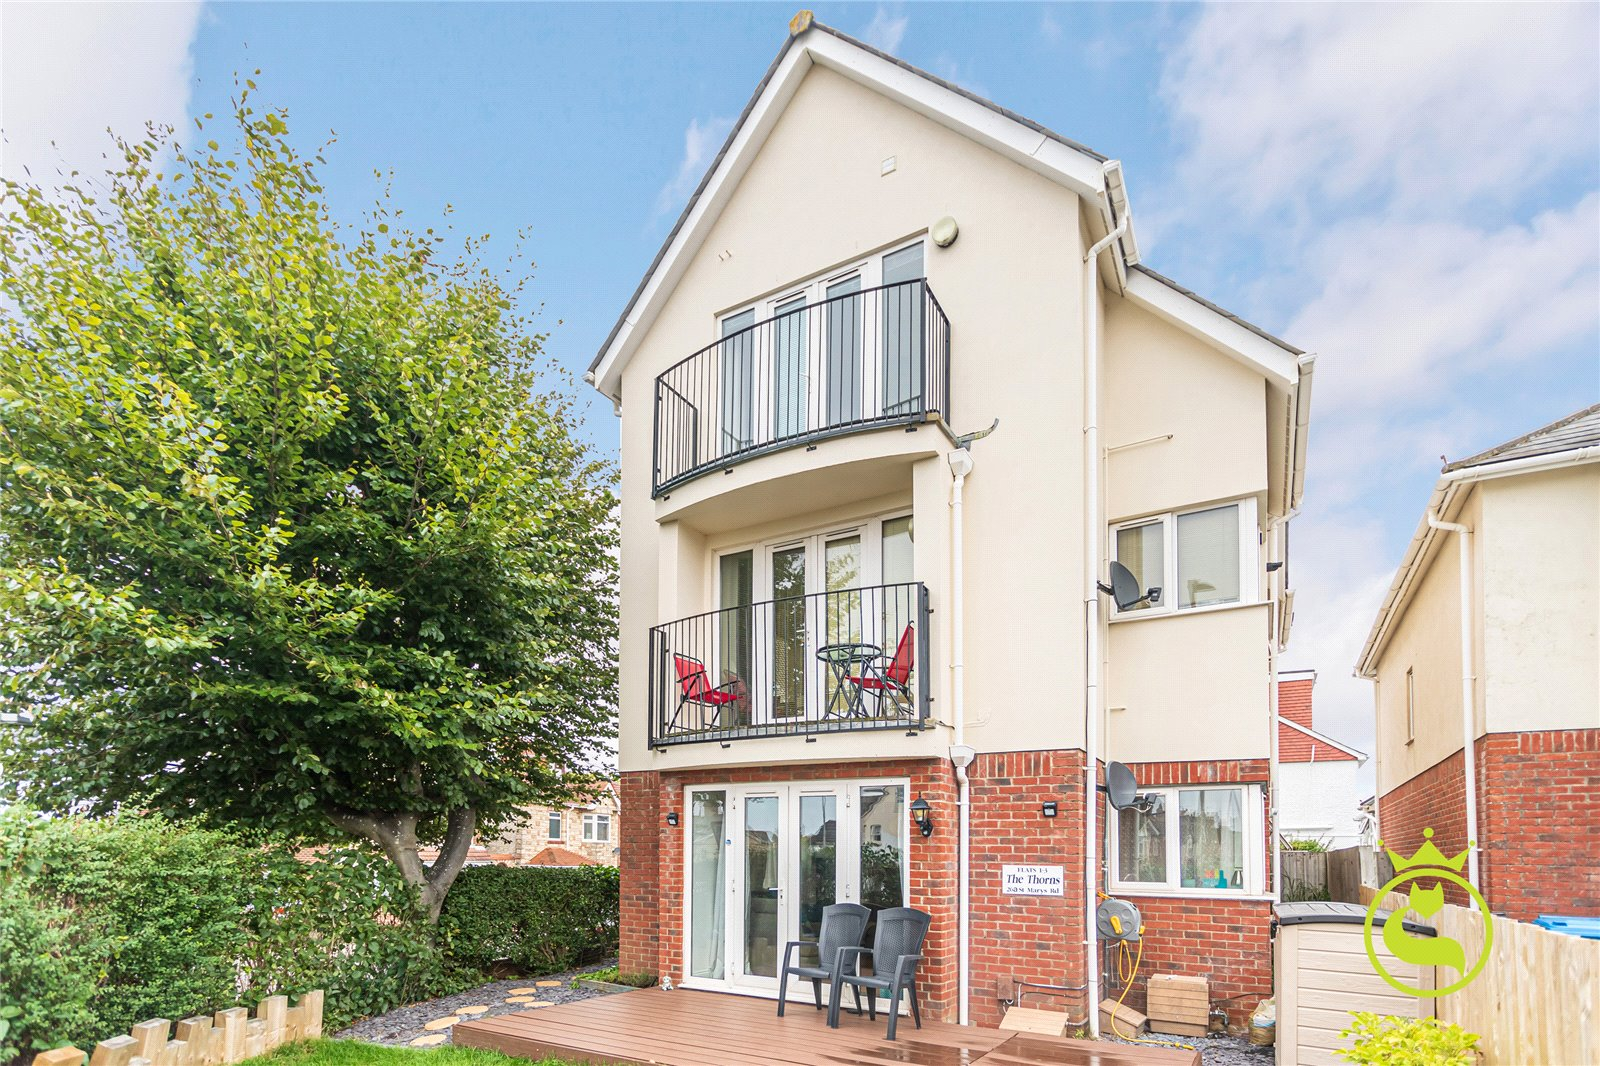 2 bed apartment for sale in St. Marys Road, Oakdale, BH15